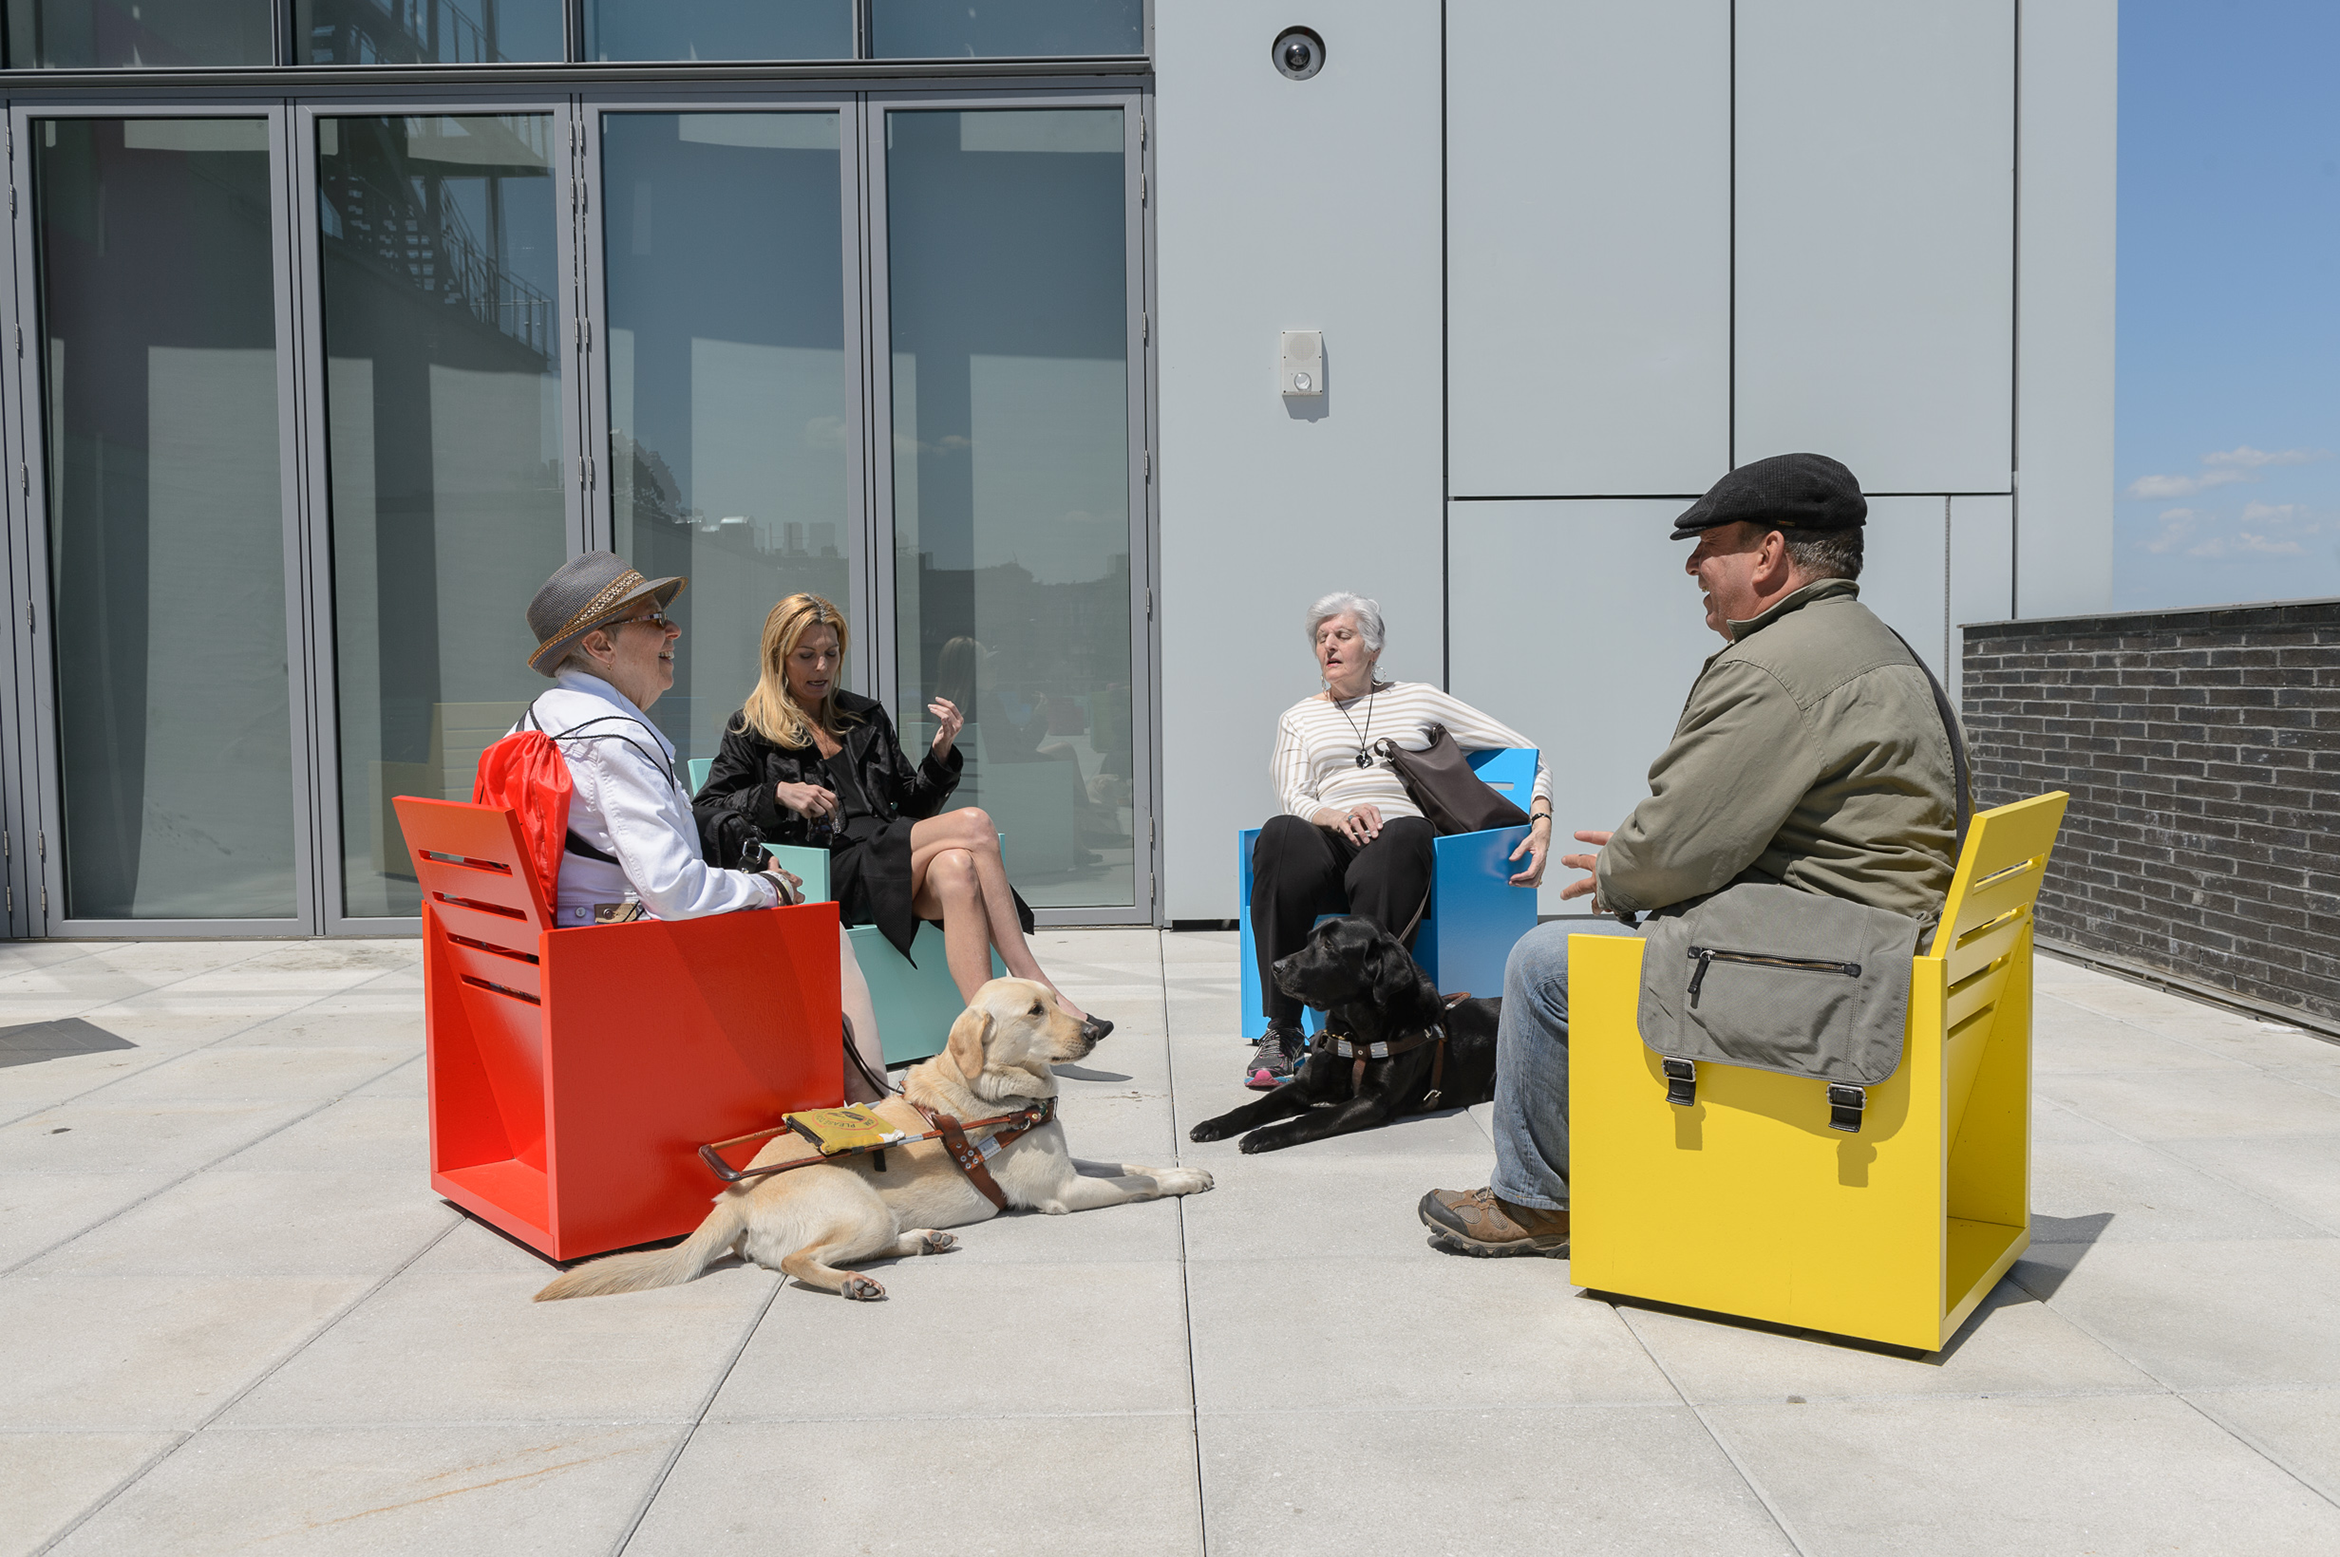 A service dog sits with four visitors in an installation by Mary Heilmann on the fifth floor terrace, May 2015.